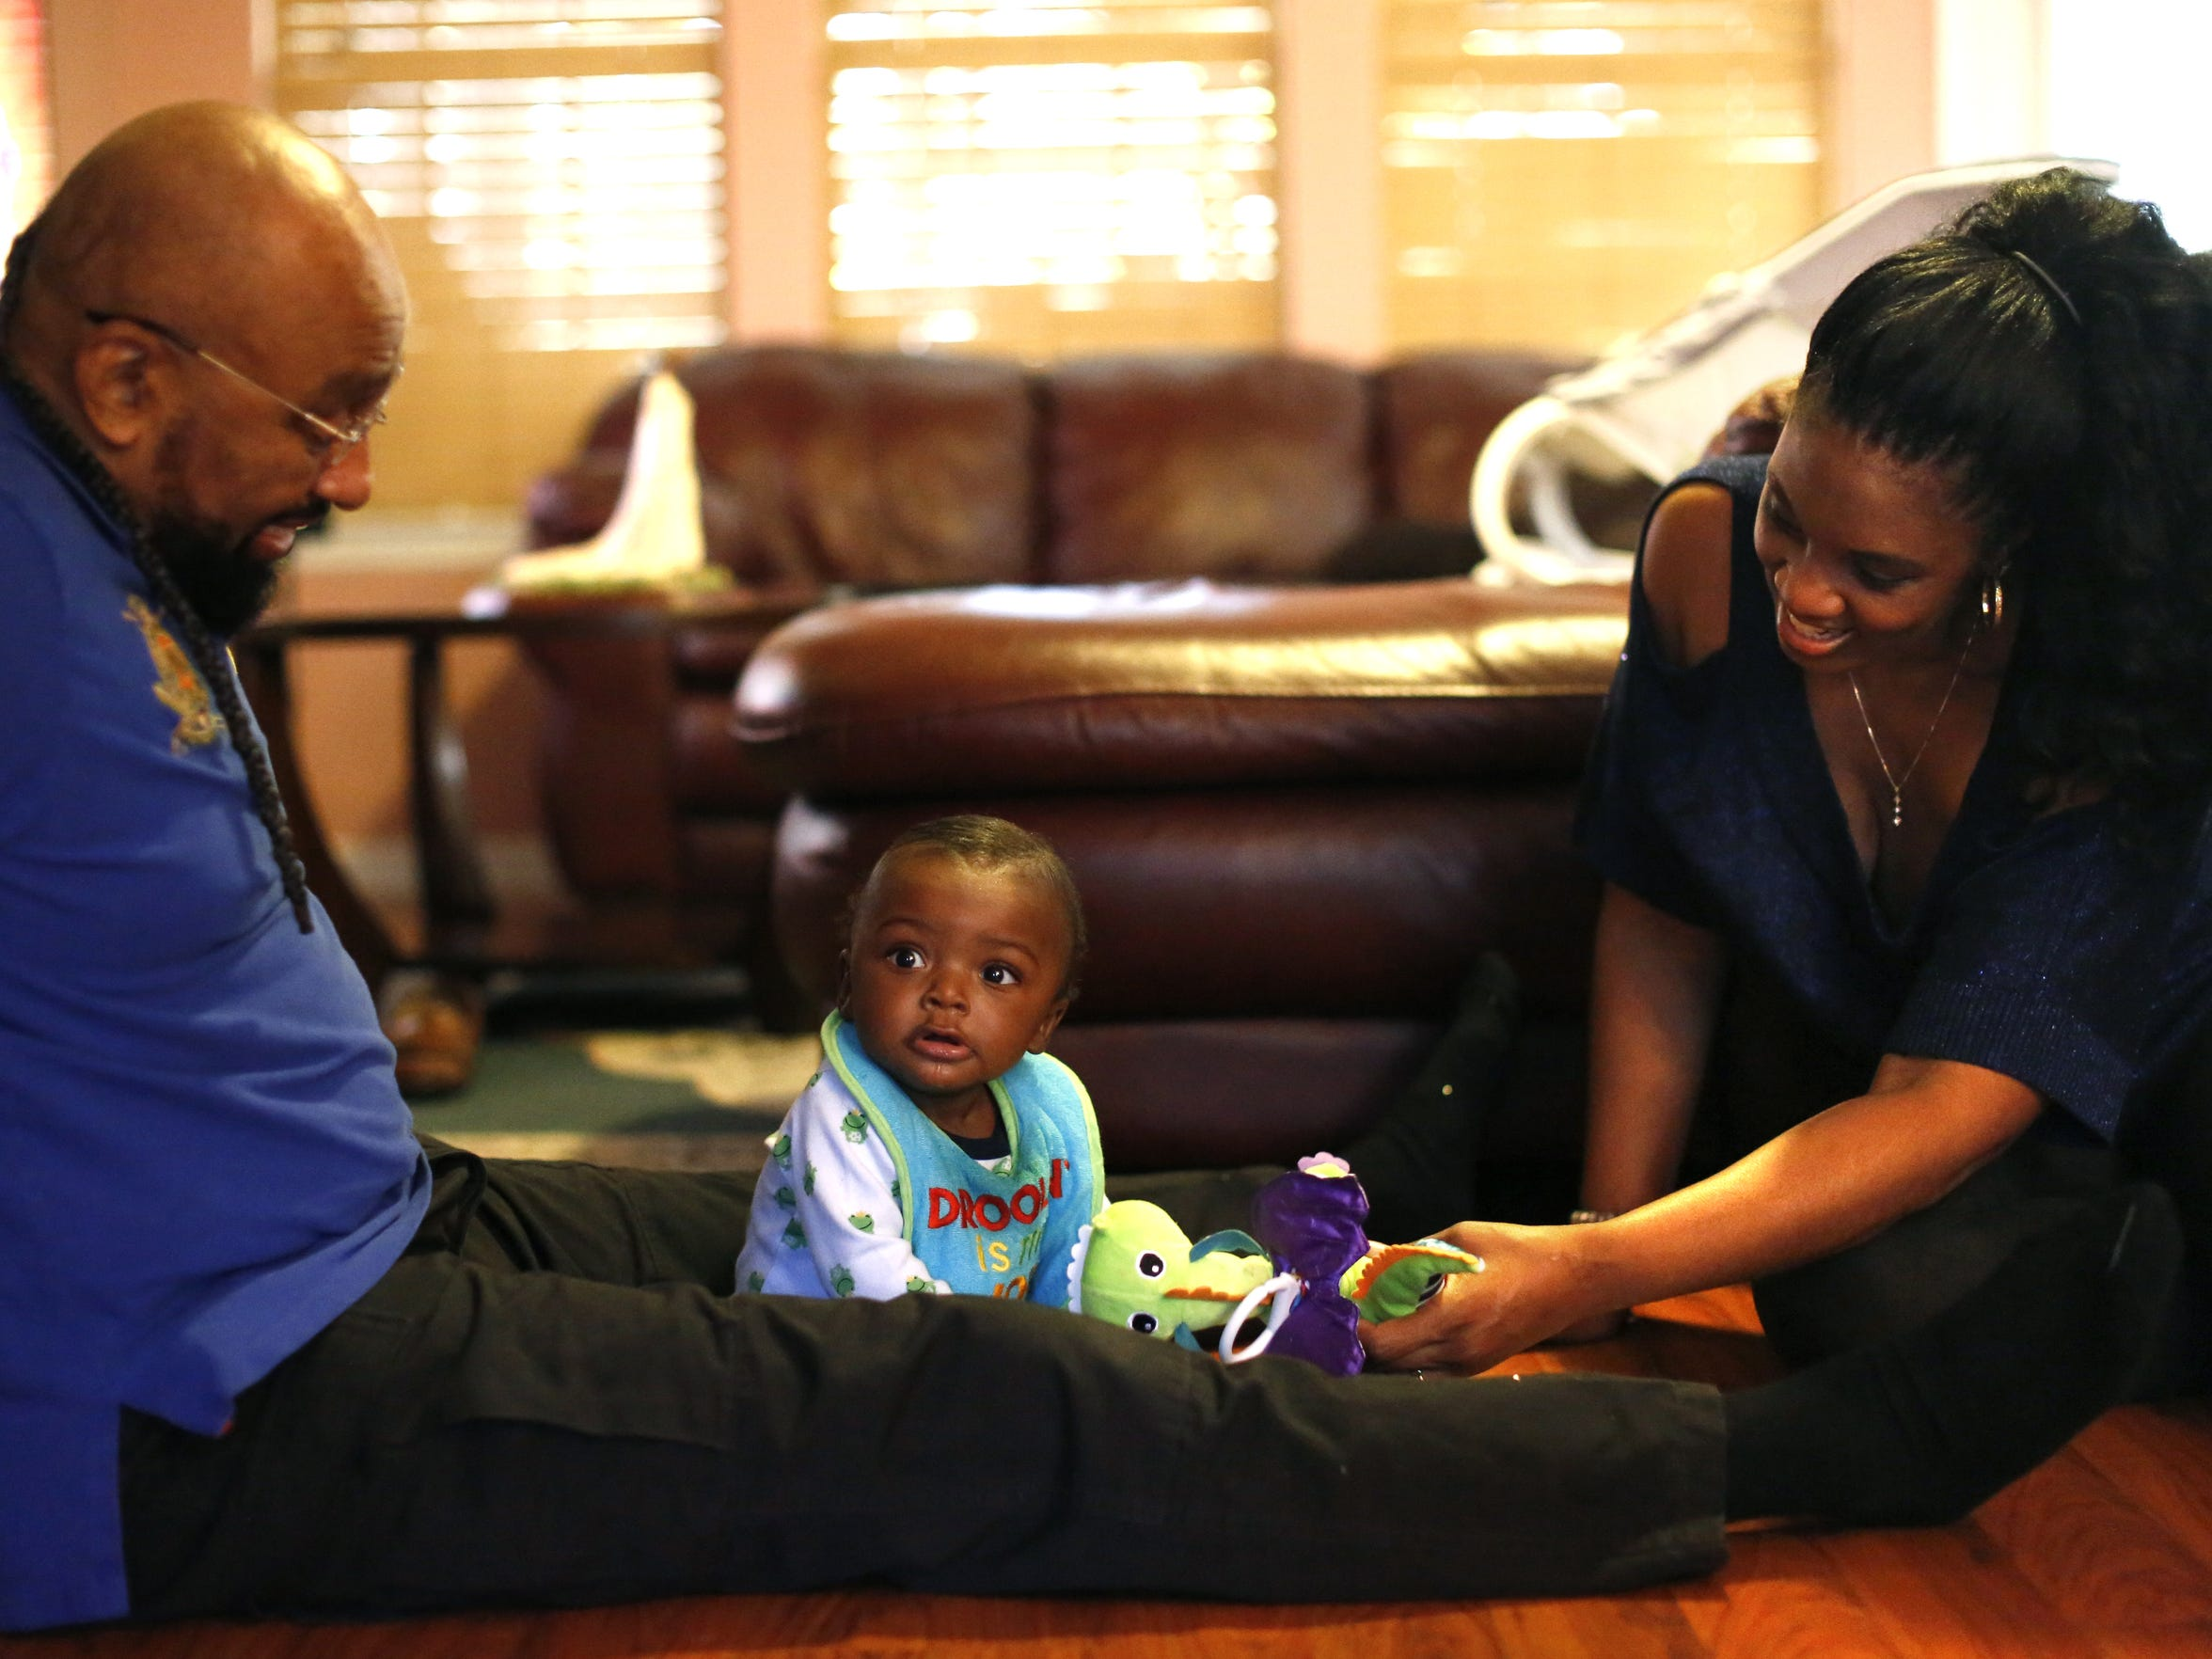 Charles and Lorraine Nichols play with their son Caleb Charlie Nichols, seven mo., in their living room Dec 12. Lorraine first laid eyes on the baby when she cared for him at TMH where he was brought after being discovered in the back of a pickup truck. Four days later she took him home to join her family.